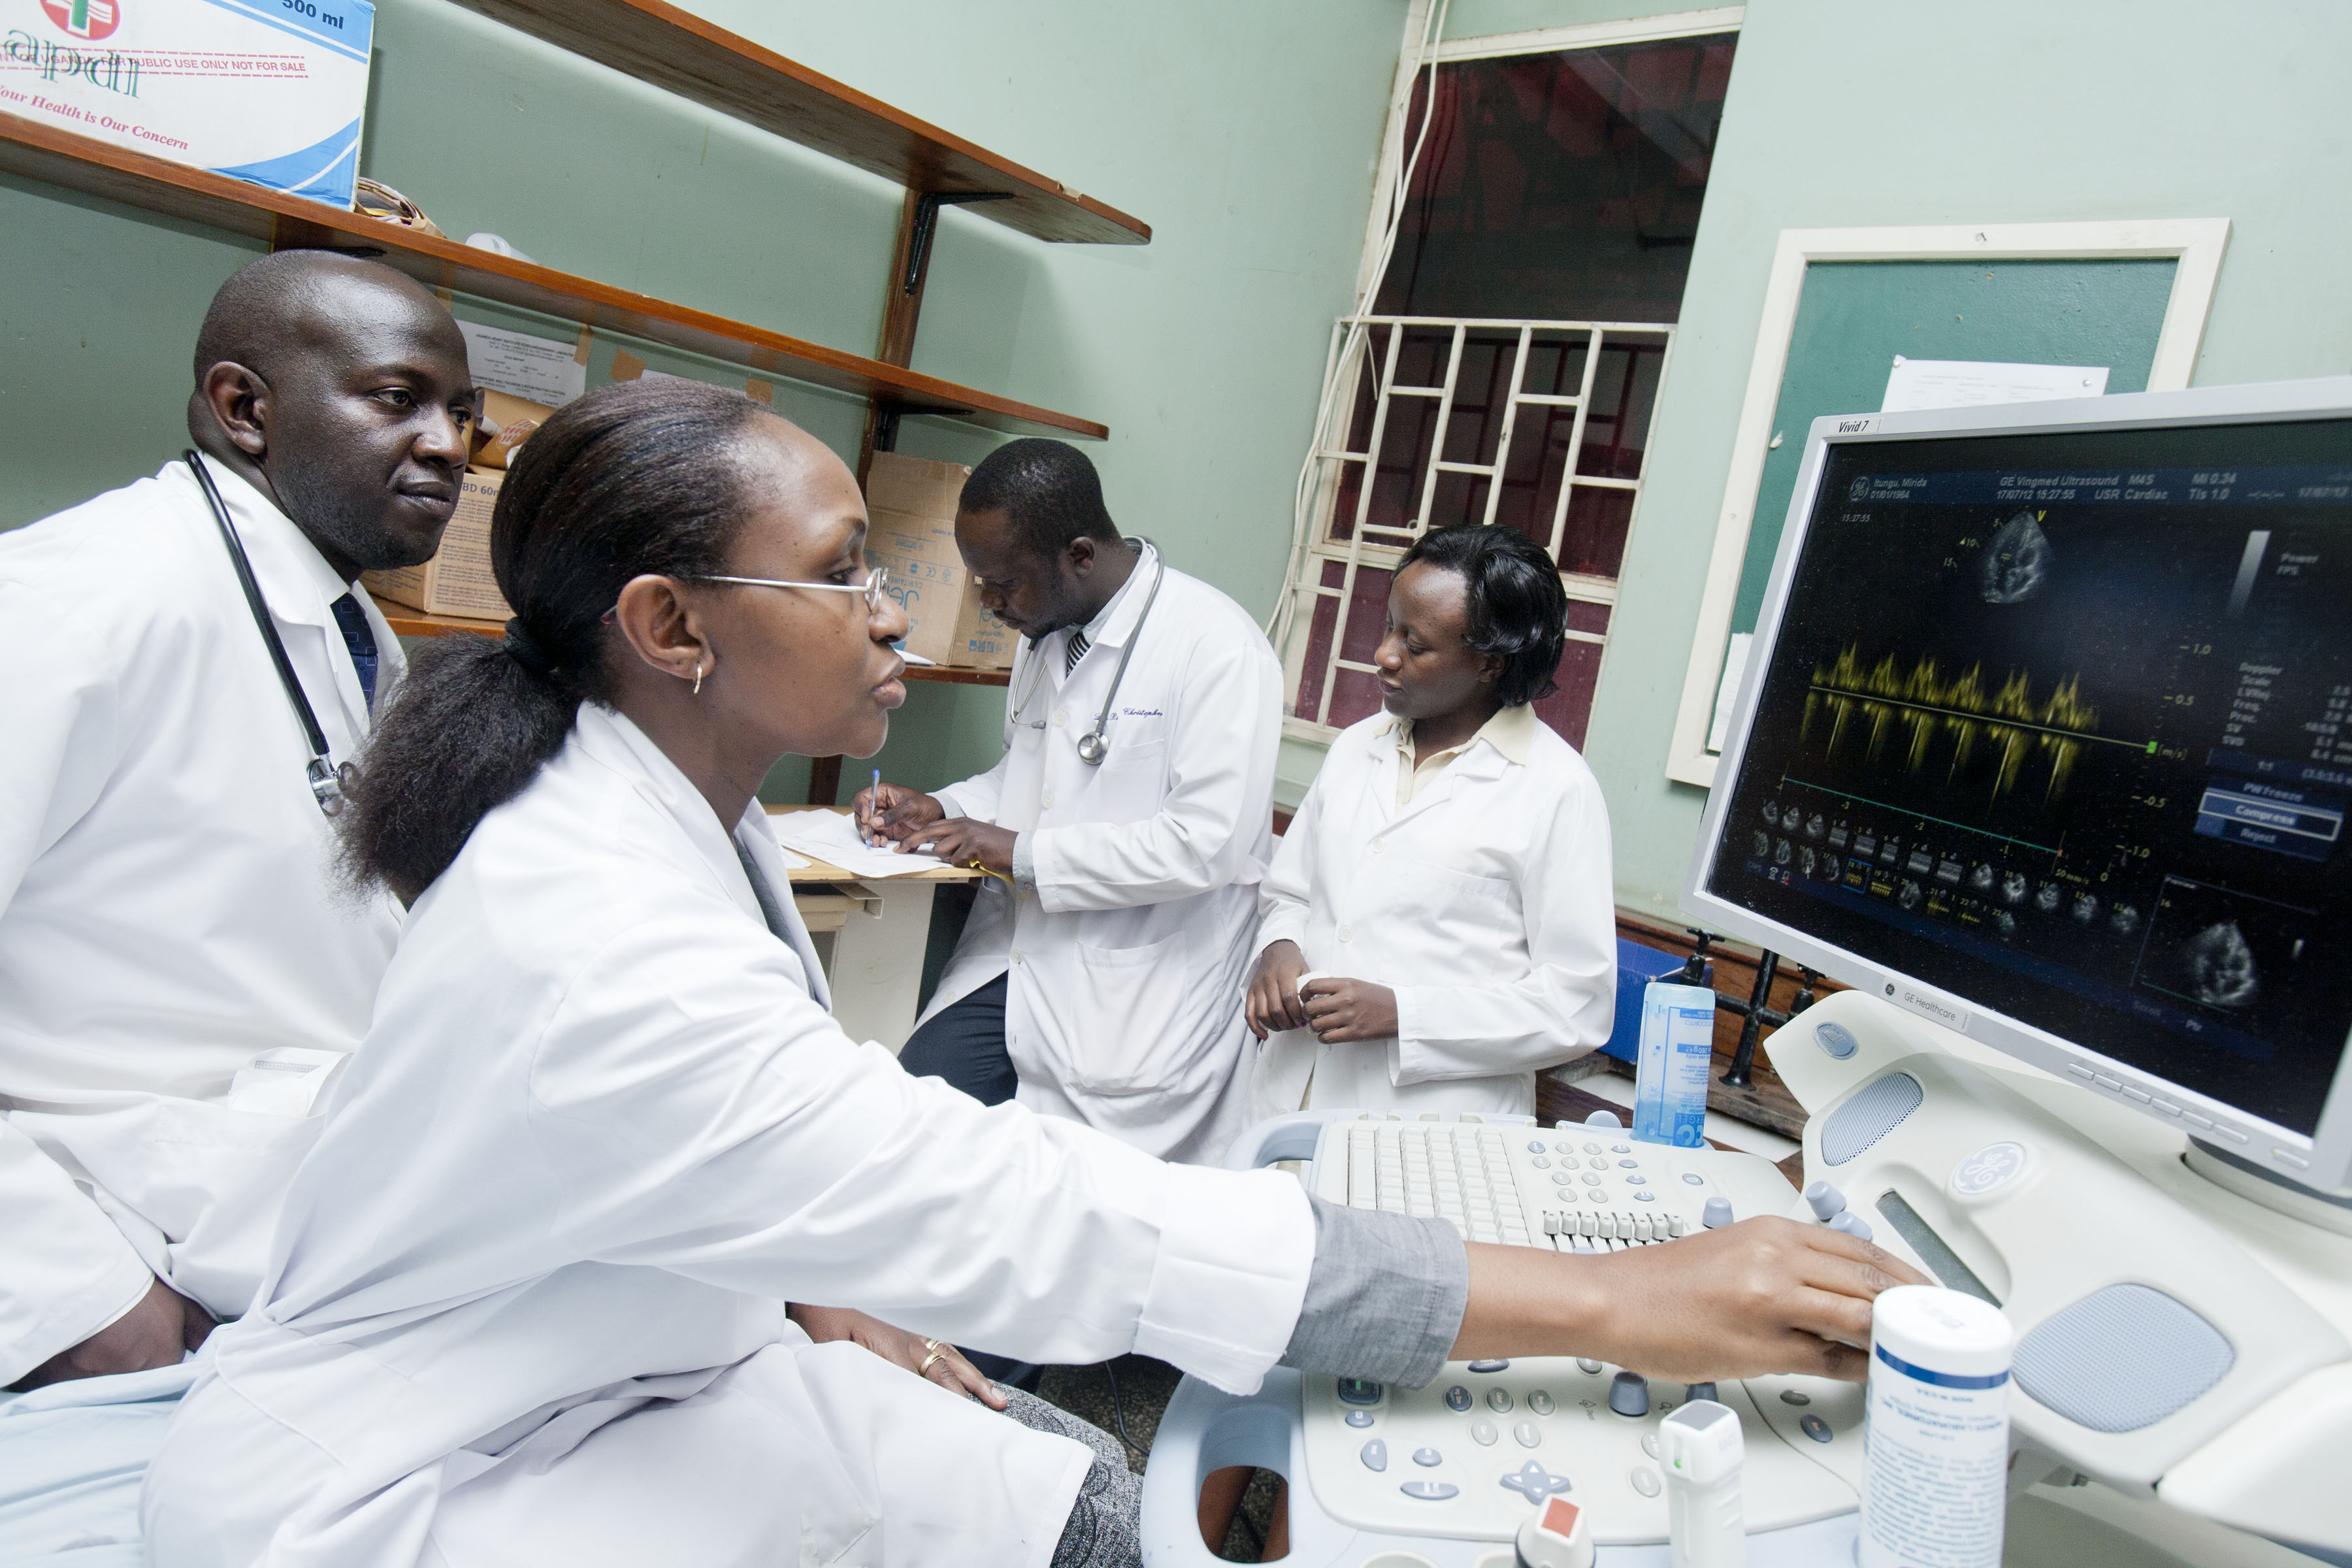 With MEPI support, Makerere University medical students learn to leverage technology to improve care and research (image: Richard Lord for Fogarty/NIH)